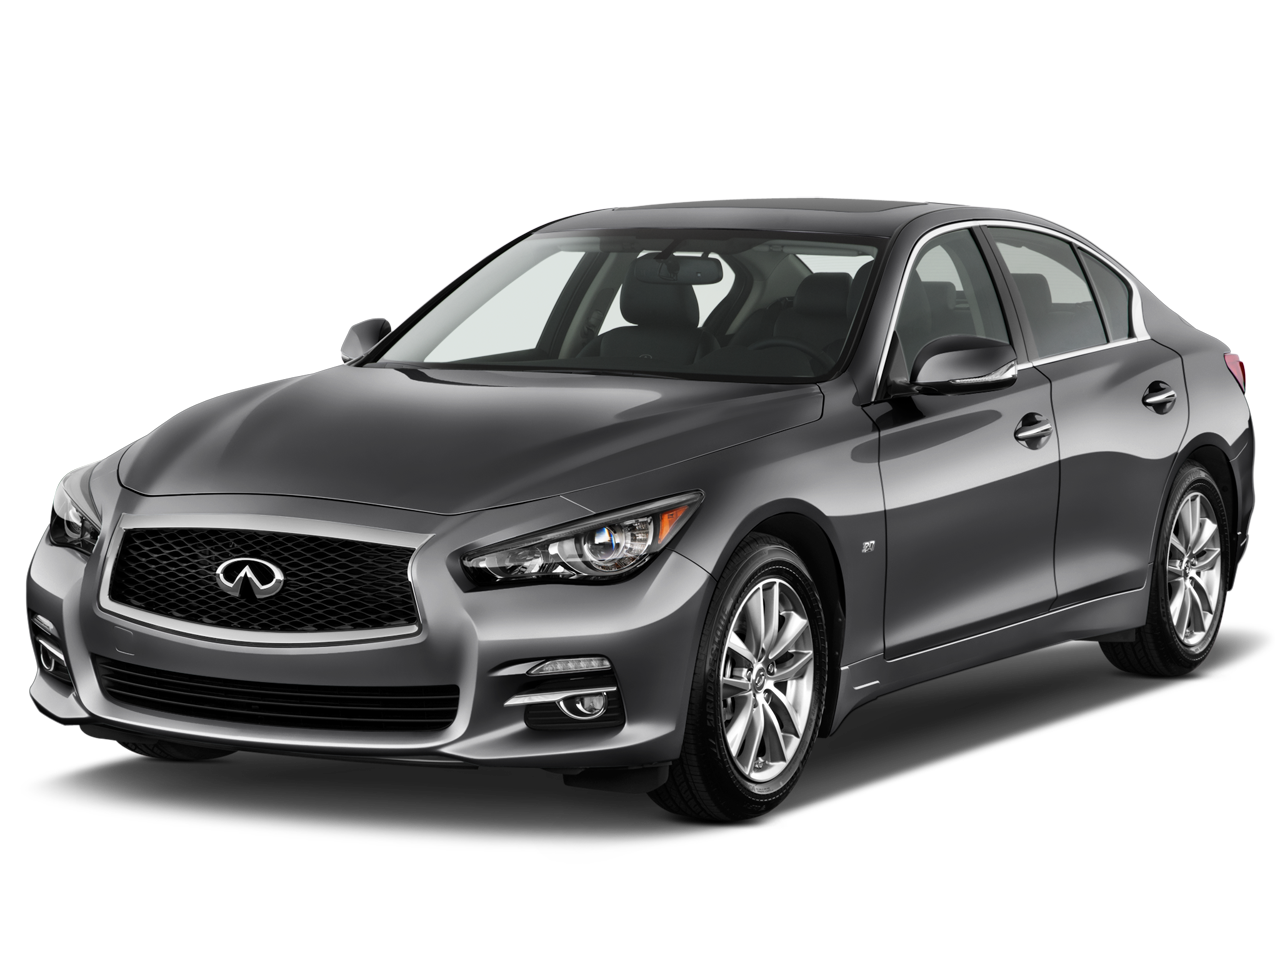 new 2017 infiniti q50 3 0t premium near norwood ma infiniti of norwood. Black Bedroom Furniture Sets. Home Design Ideas